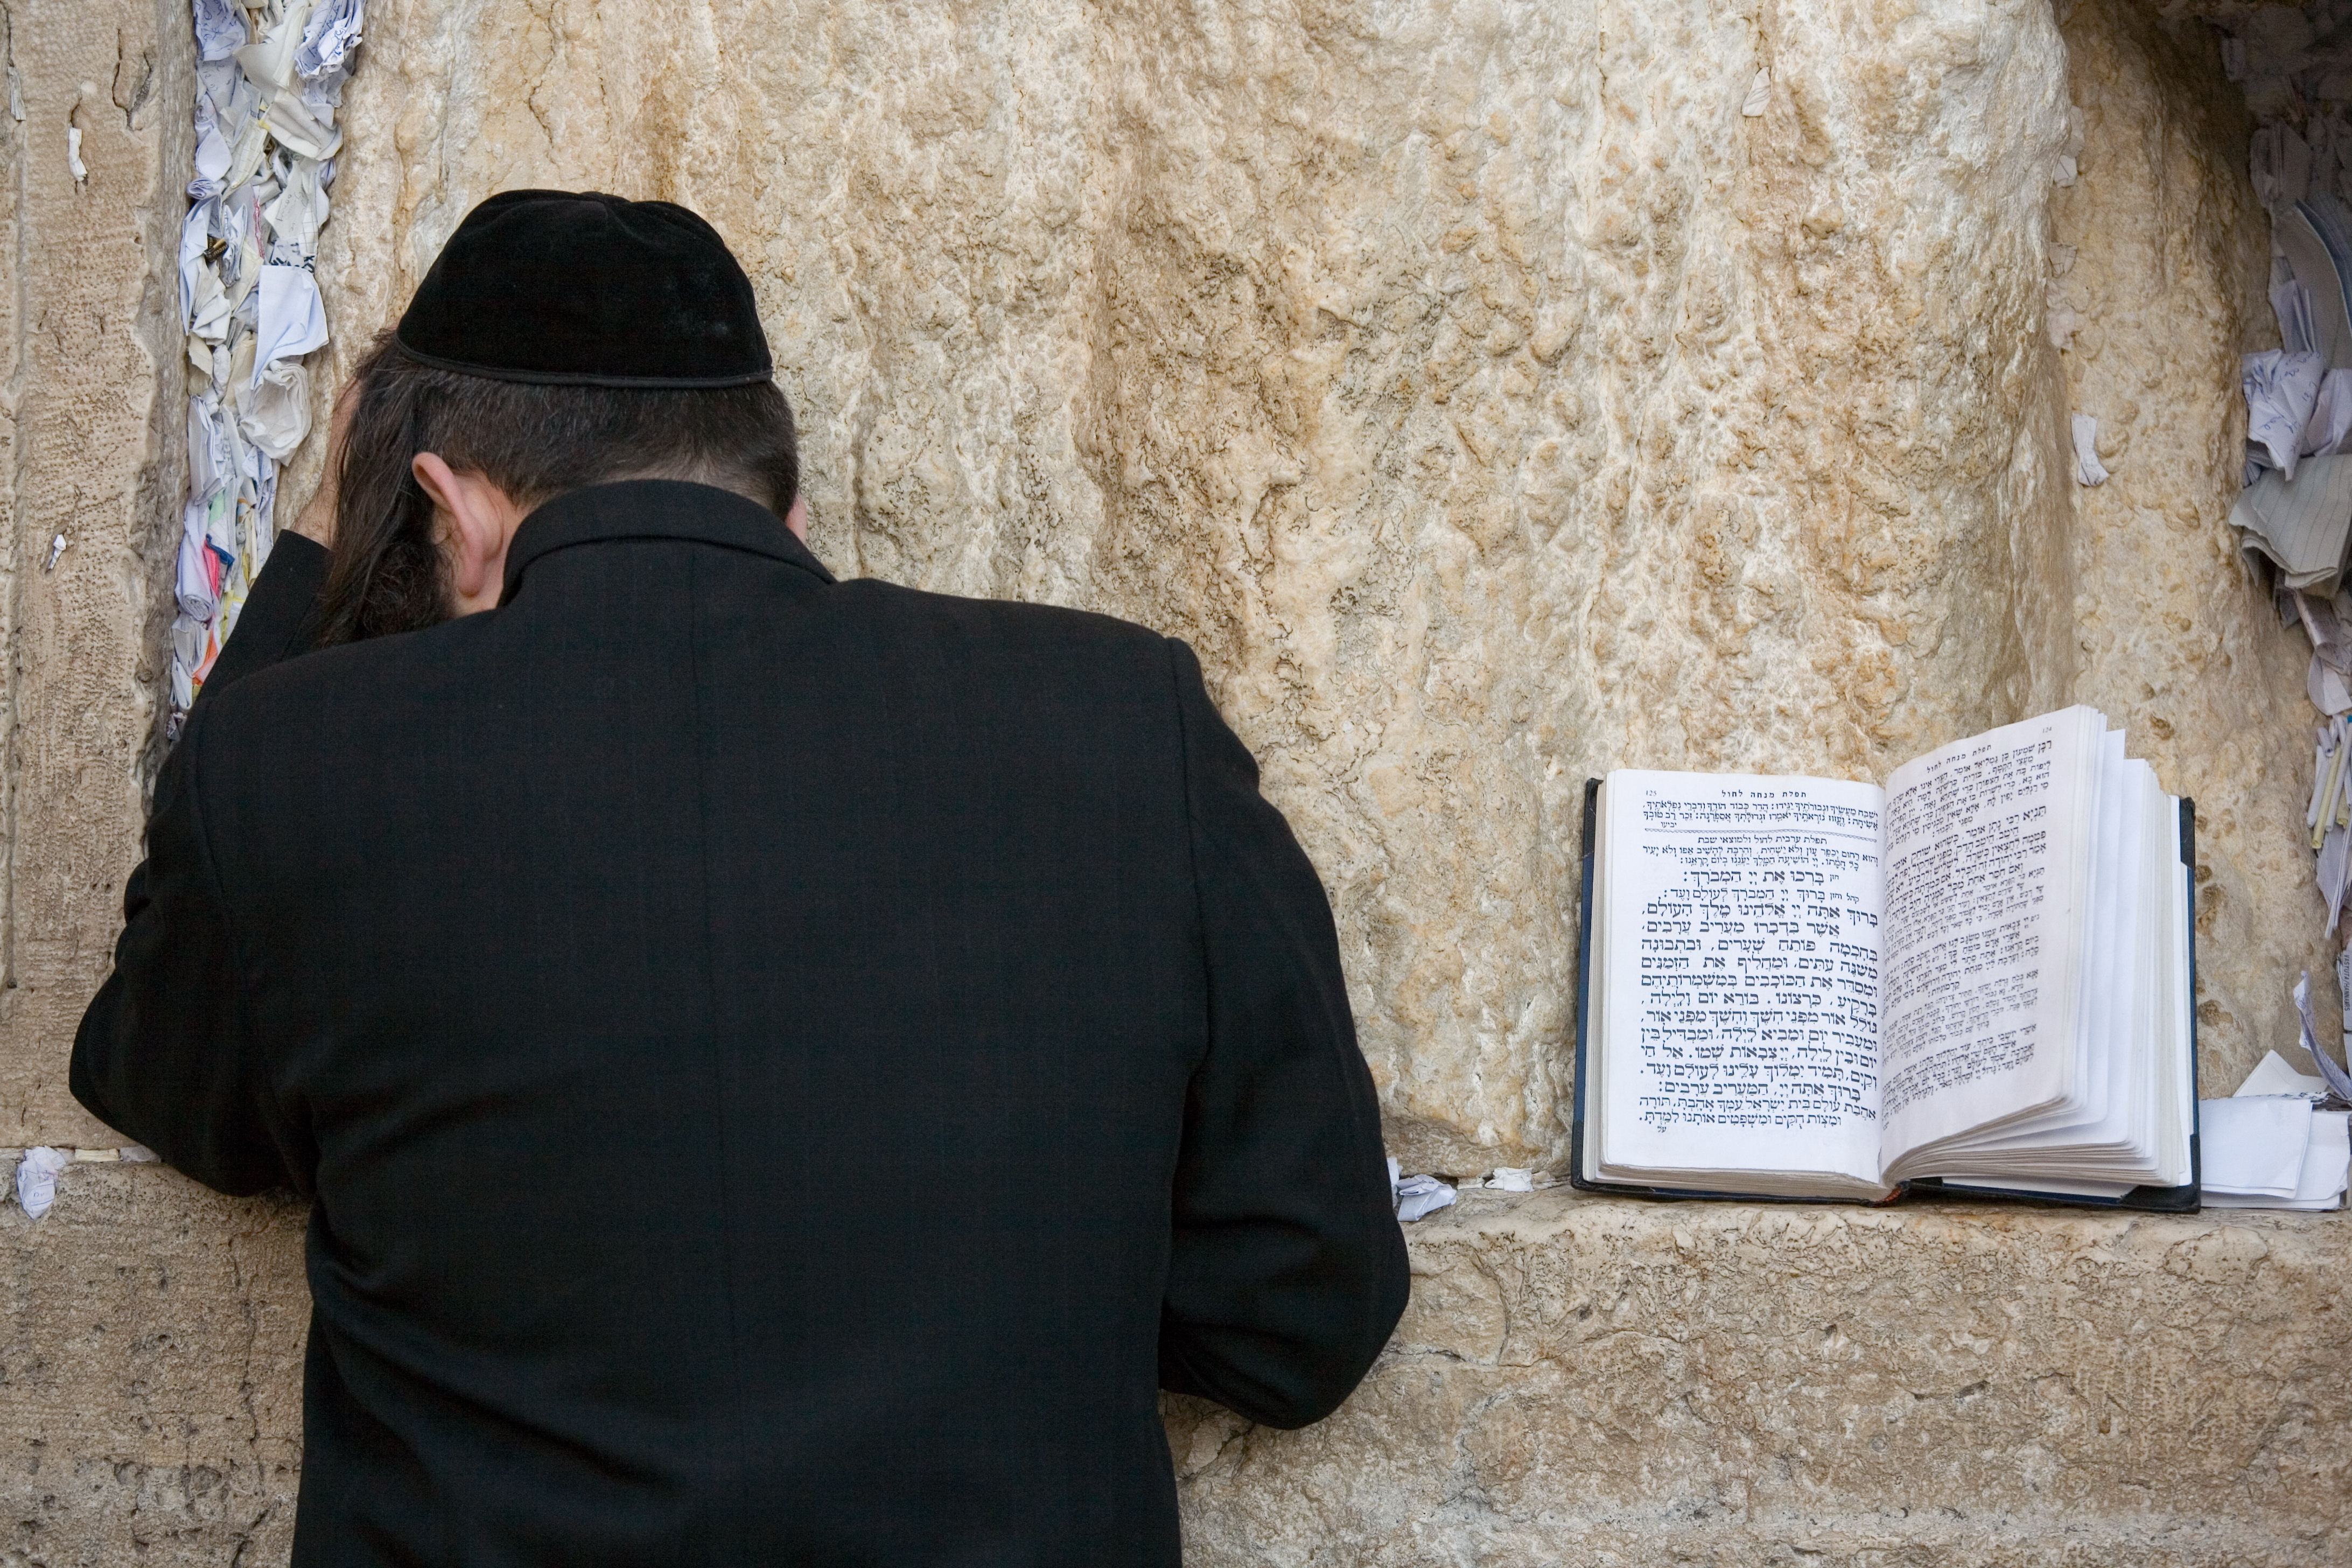 Cruises To Europe >> What happens to prayer notes at the Western Wall? - Inspiration Cruises & Tours Exceptional ...